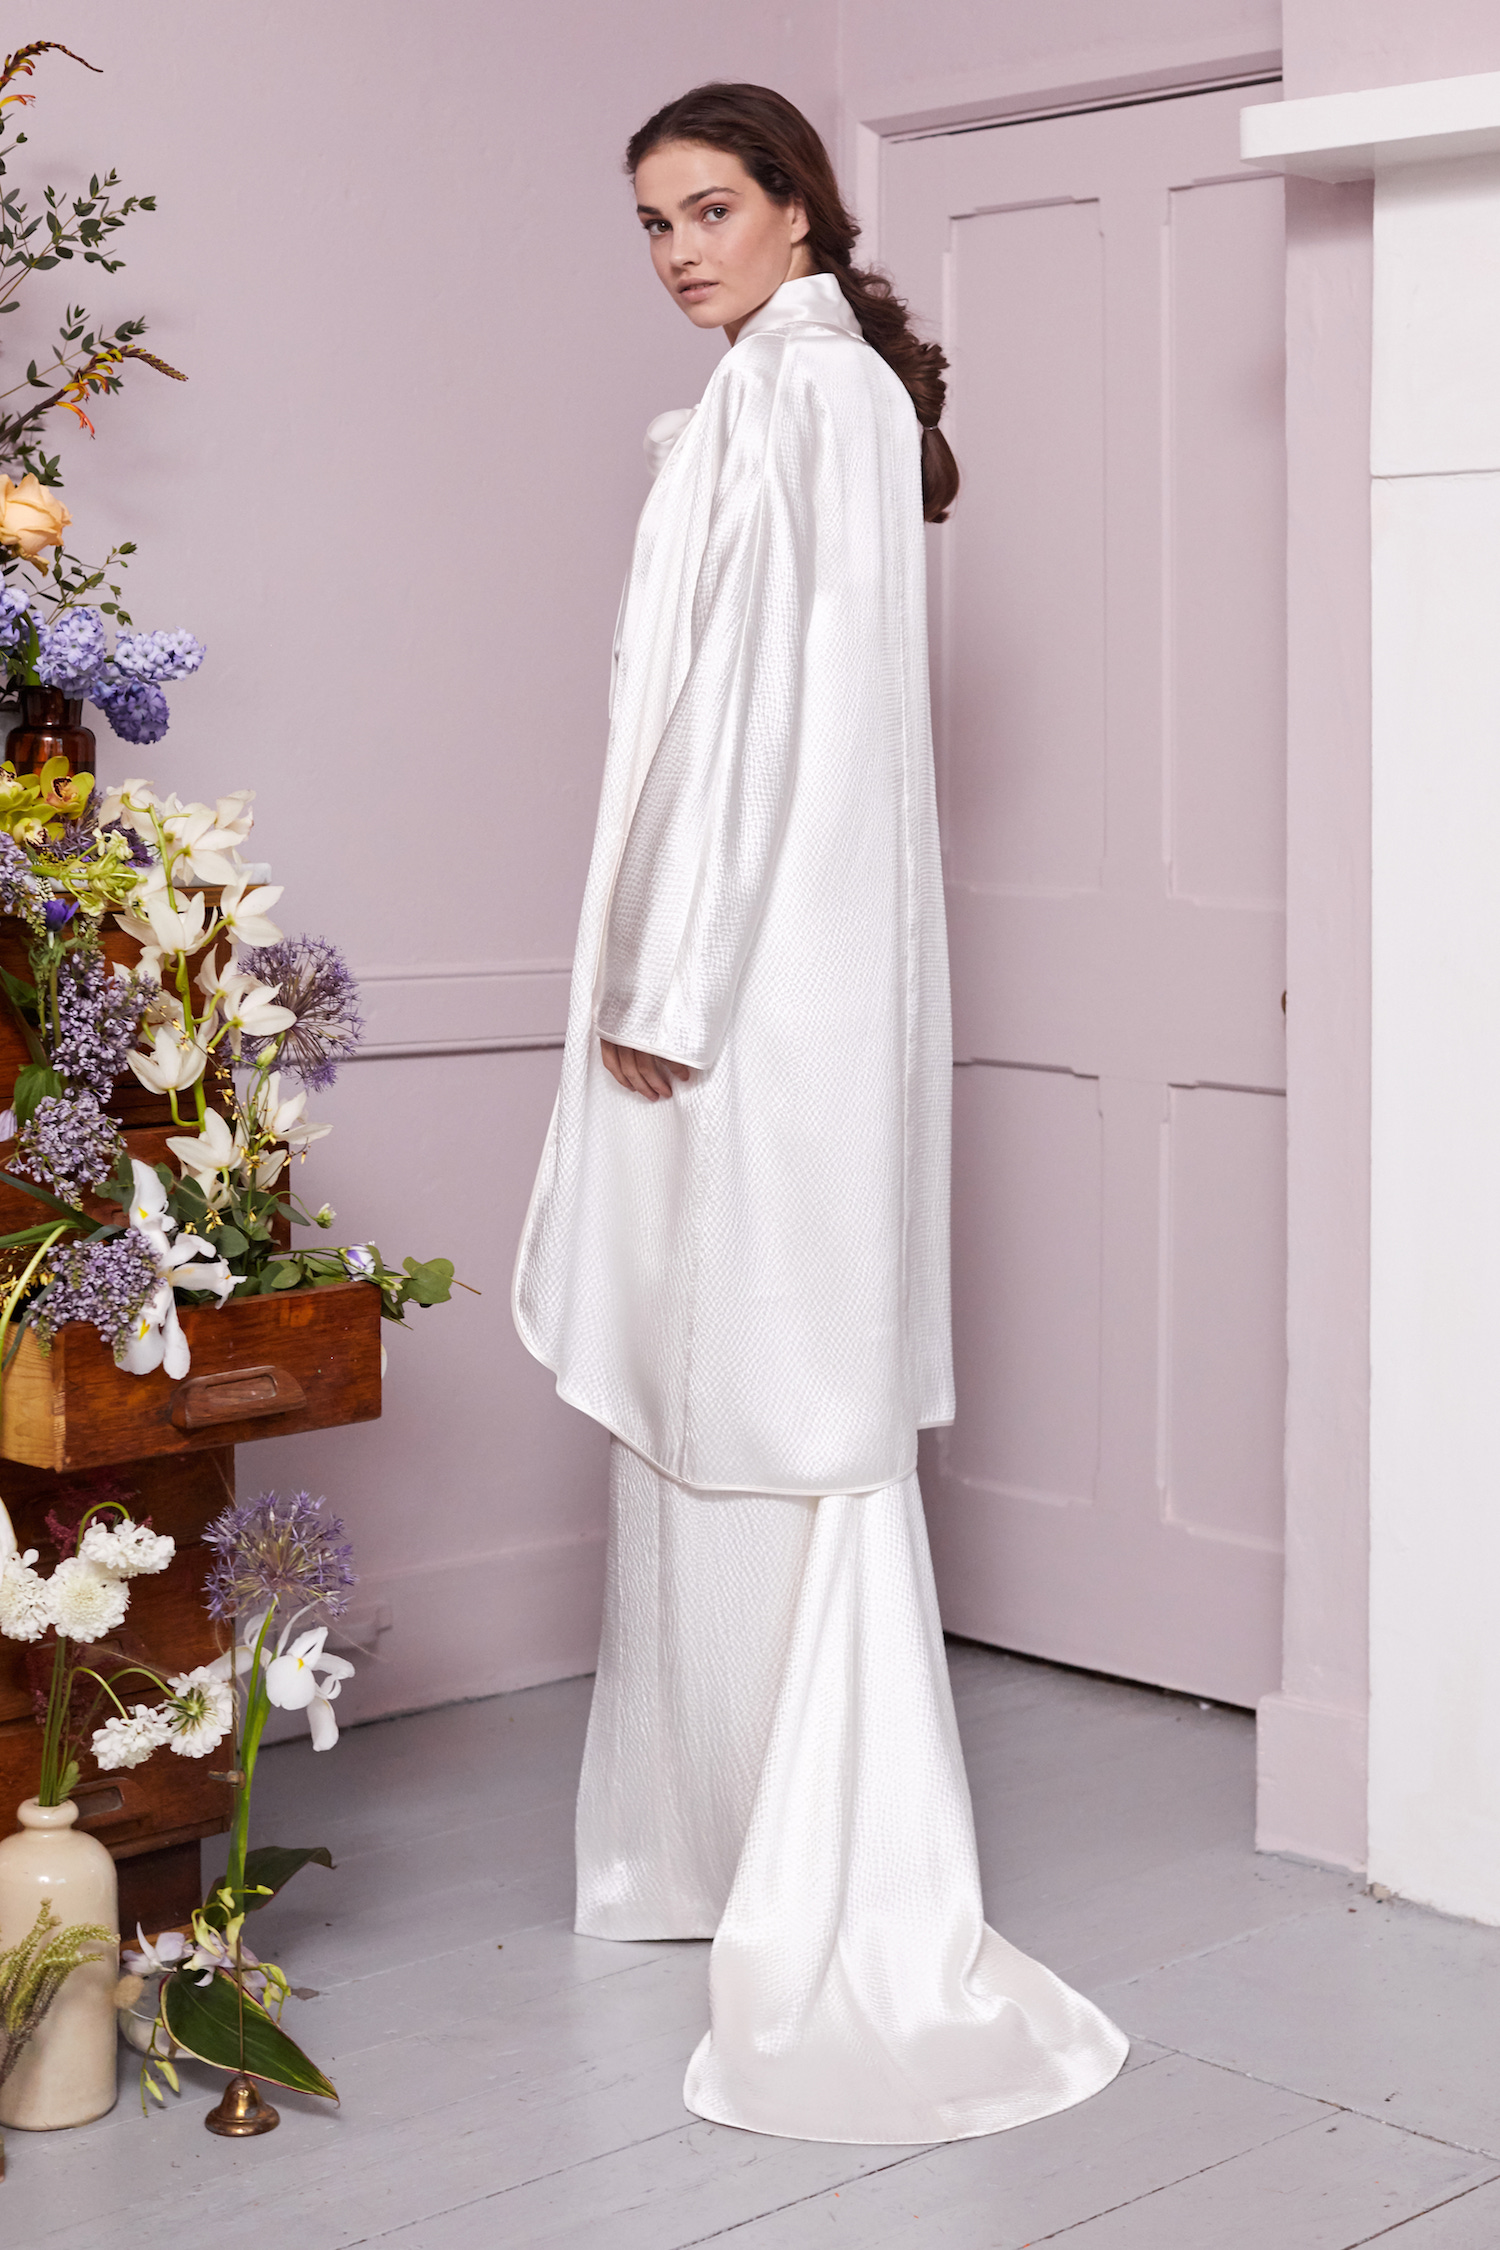 ORKA JACKET, PARRY BLOUSE & ORKA SKIRT | WEDDING DRESS BY HALFPENNY LONDON